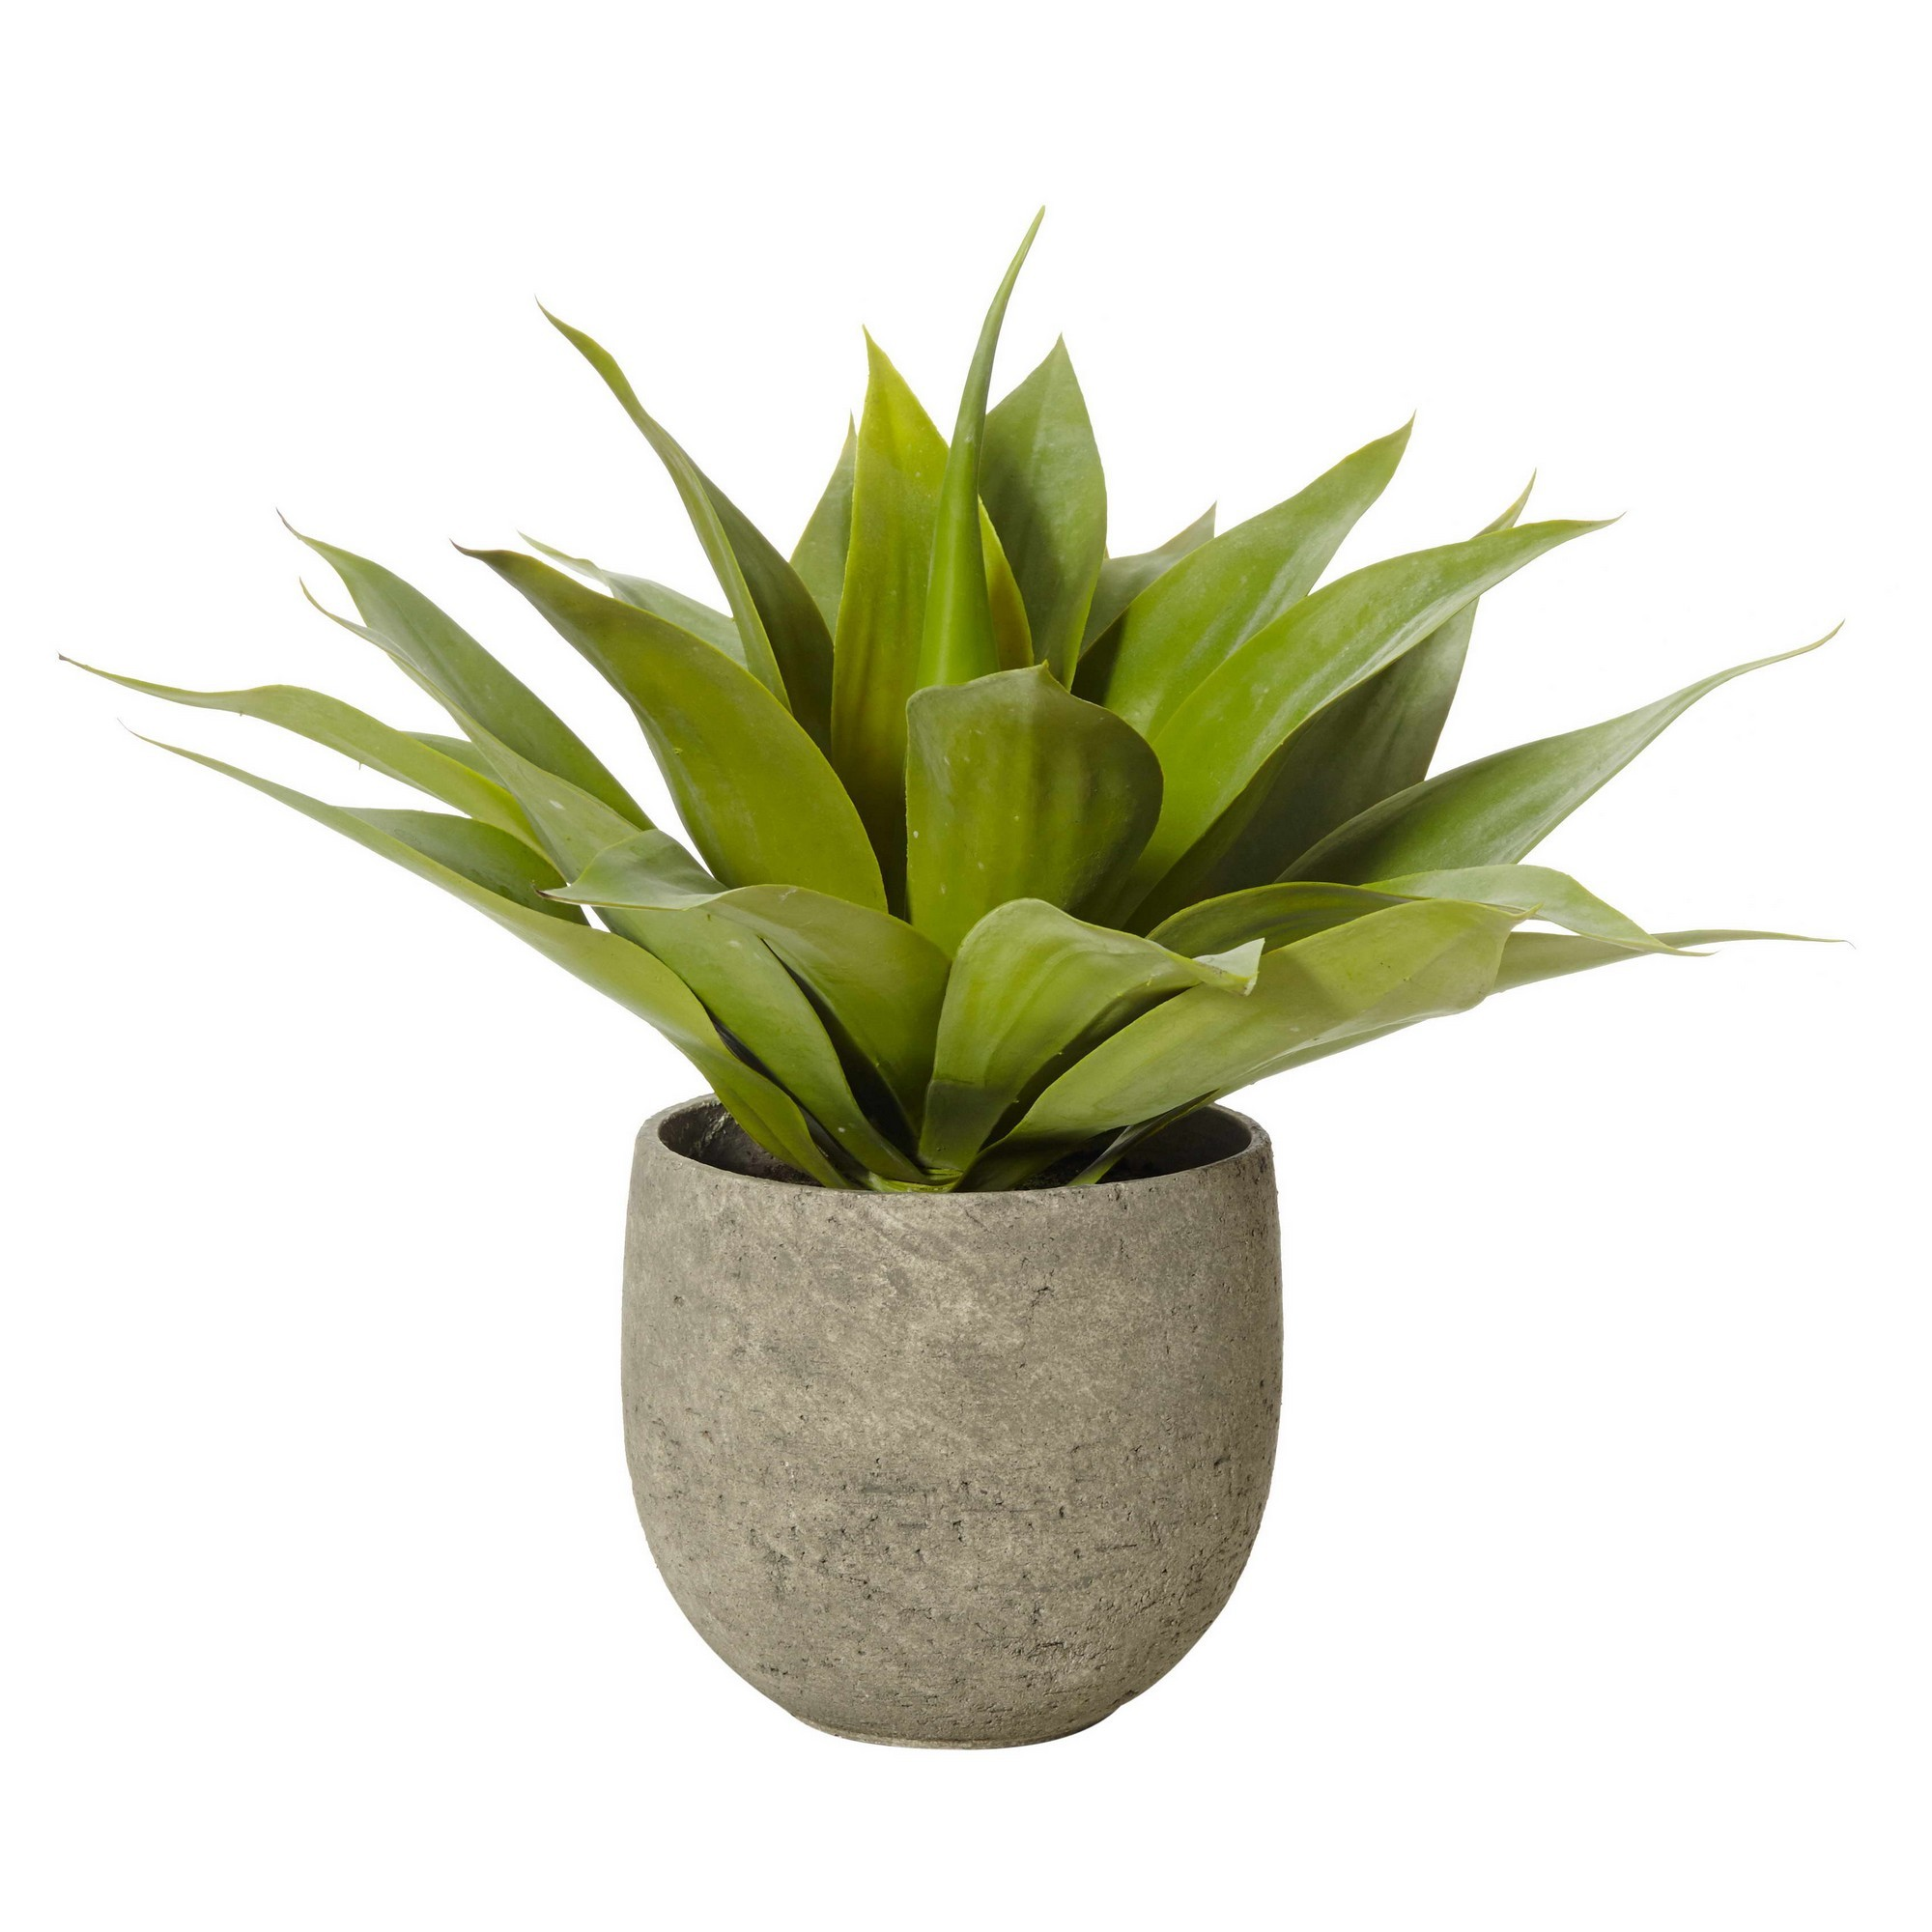 Artificial Agave Plant in Tub Pot, 48cm